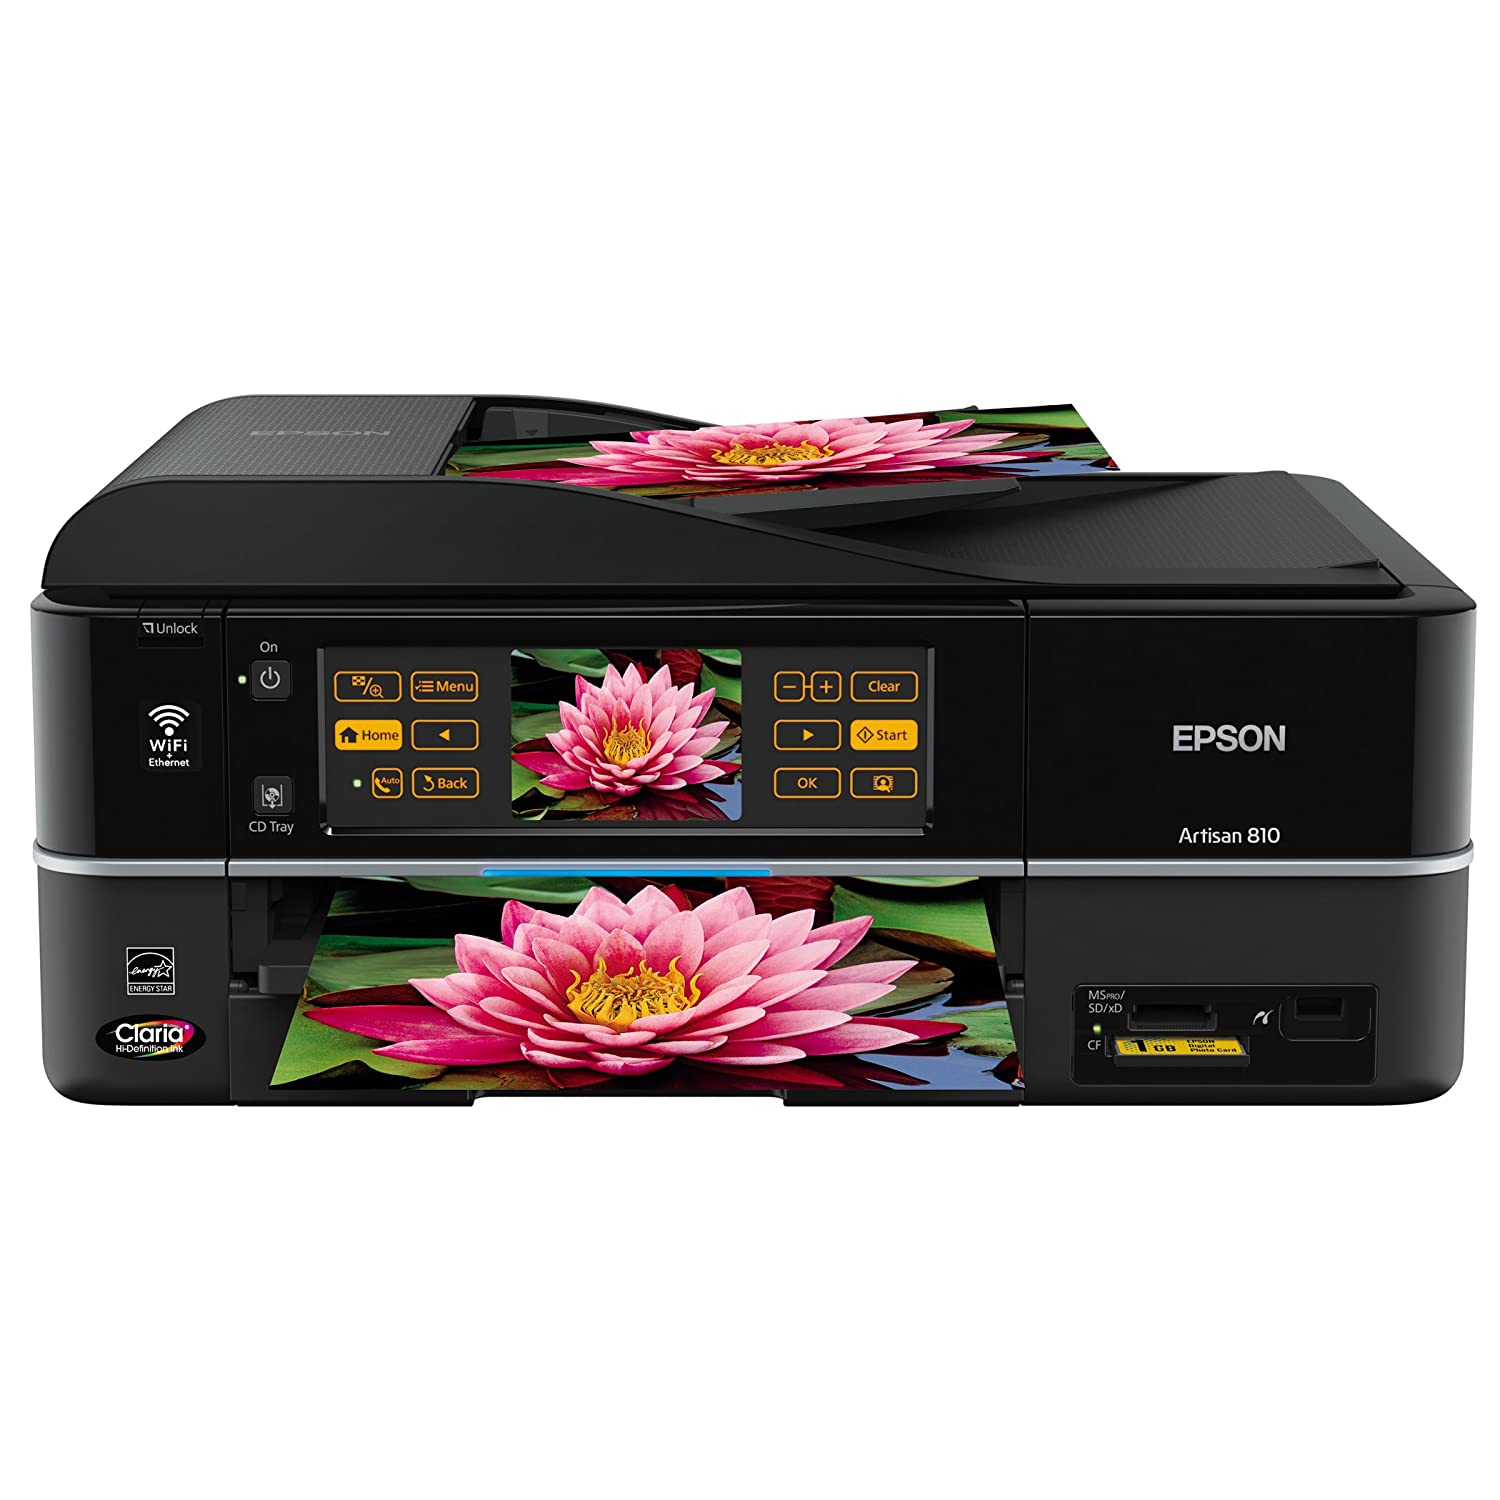 Epson Artisan 810 Wireless All-in-One Color Inkjet Printer, Copier,  Scanner, Fax (C11CA52201)